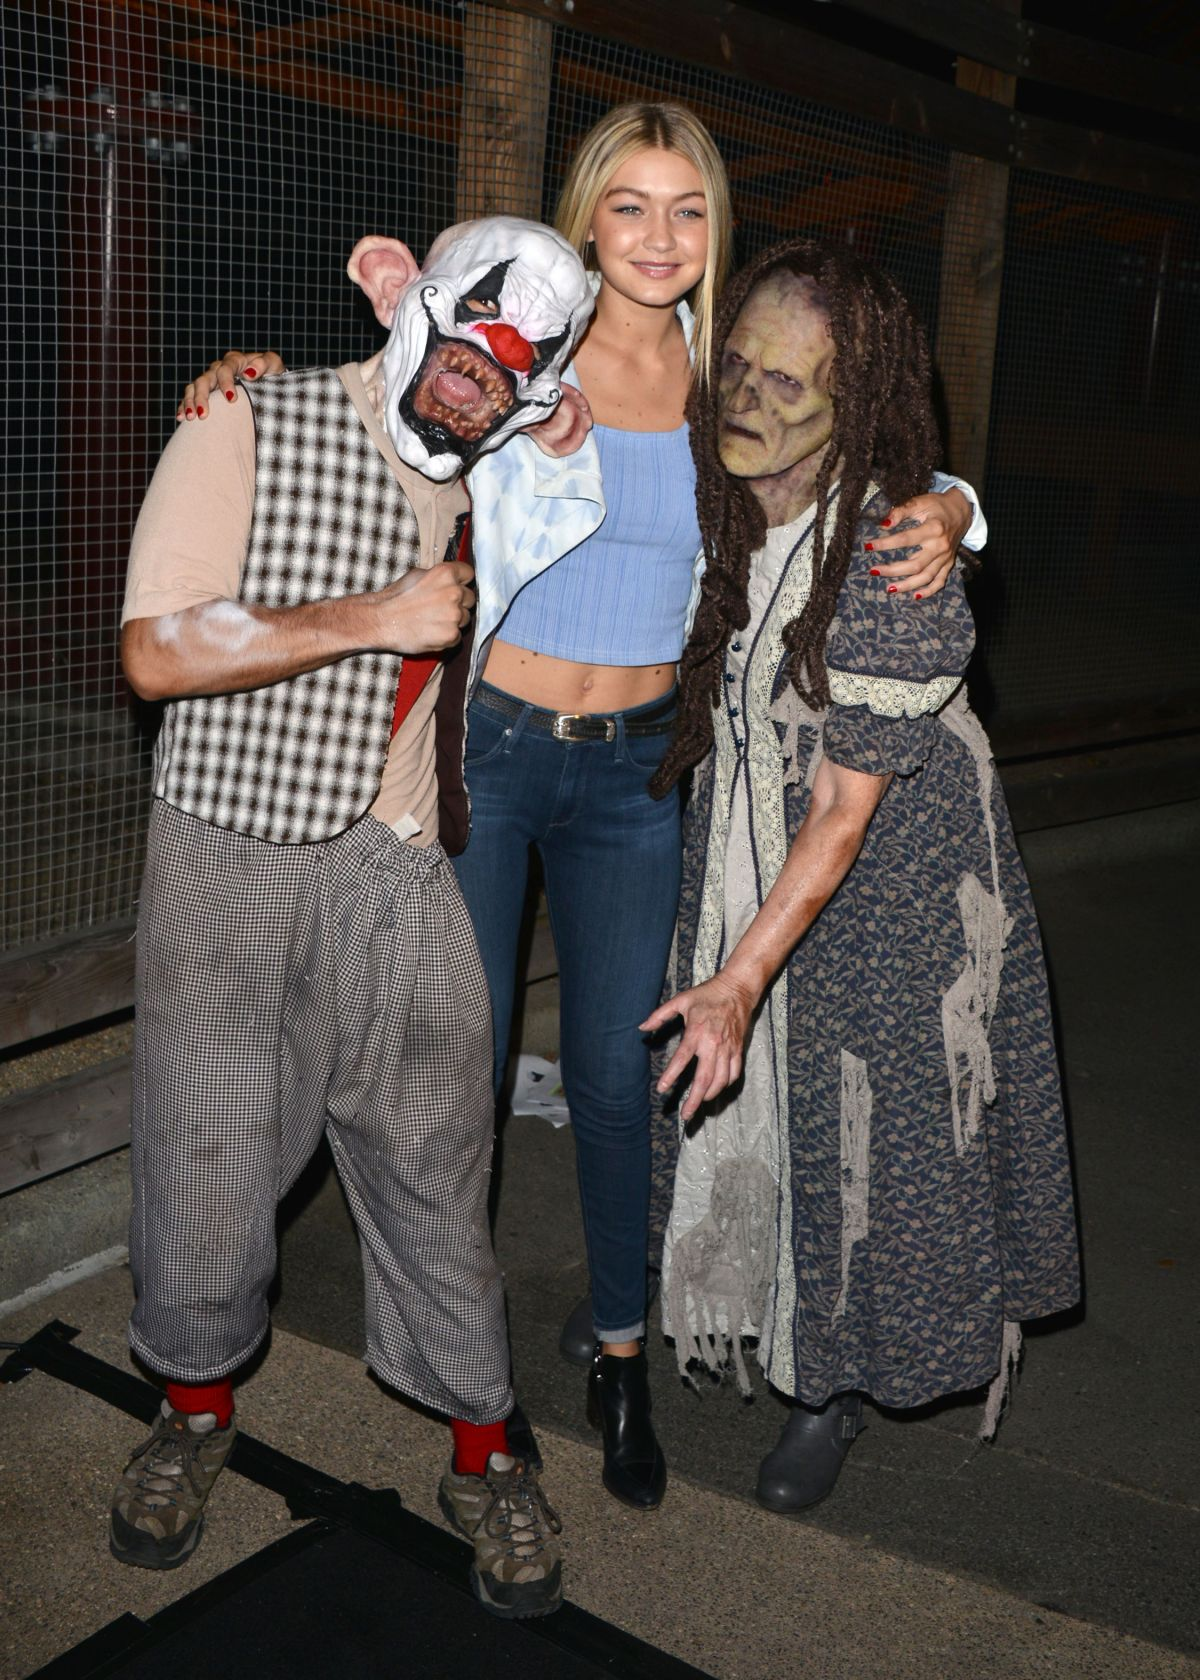 Knotts scary farm coupons 2018